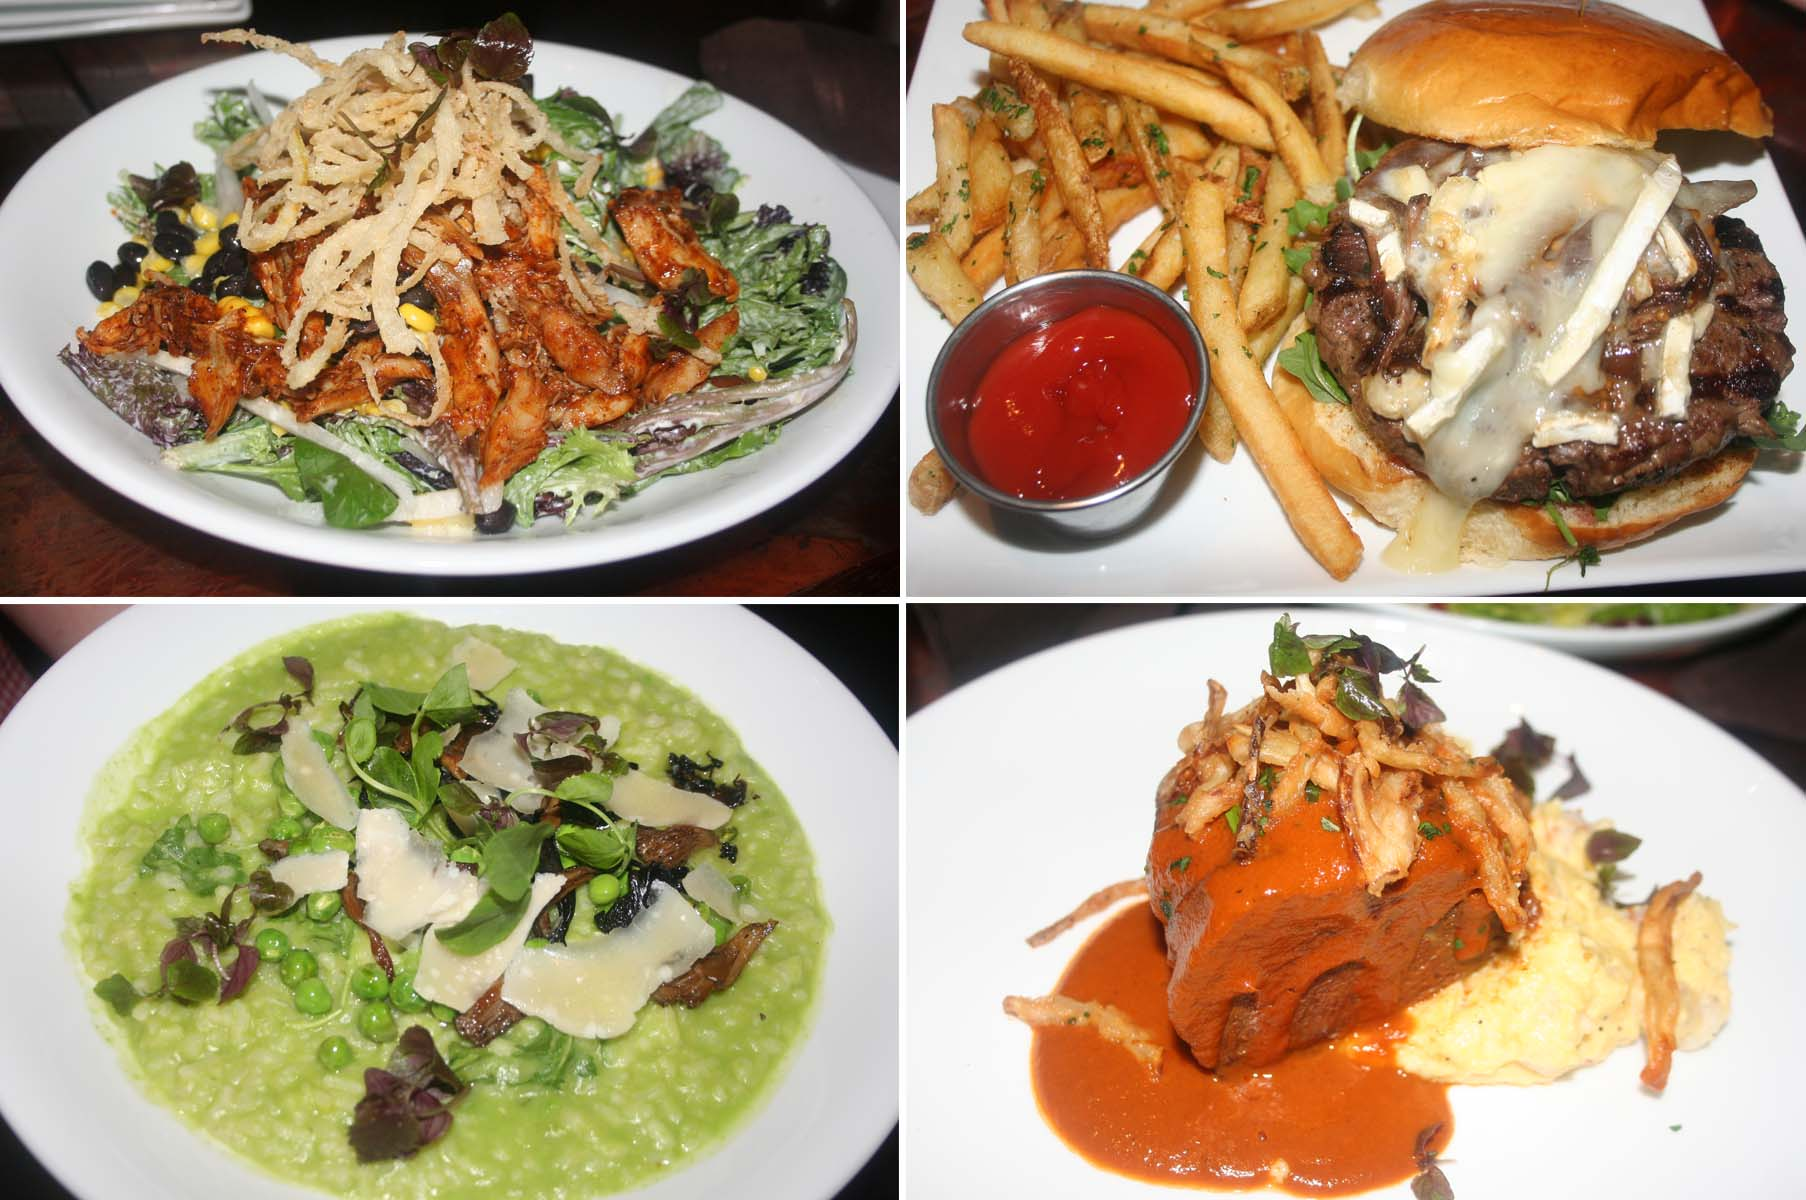 Entrees include the BBQ chicken salad (clockwise from top left), Wagyu beef burger, braised short rib and shrimp grits and pea risotto. (Photos: Mark Heckathorn/DC on Heels)